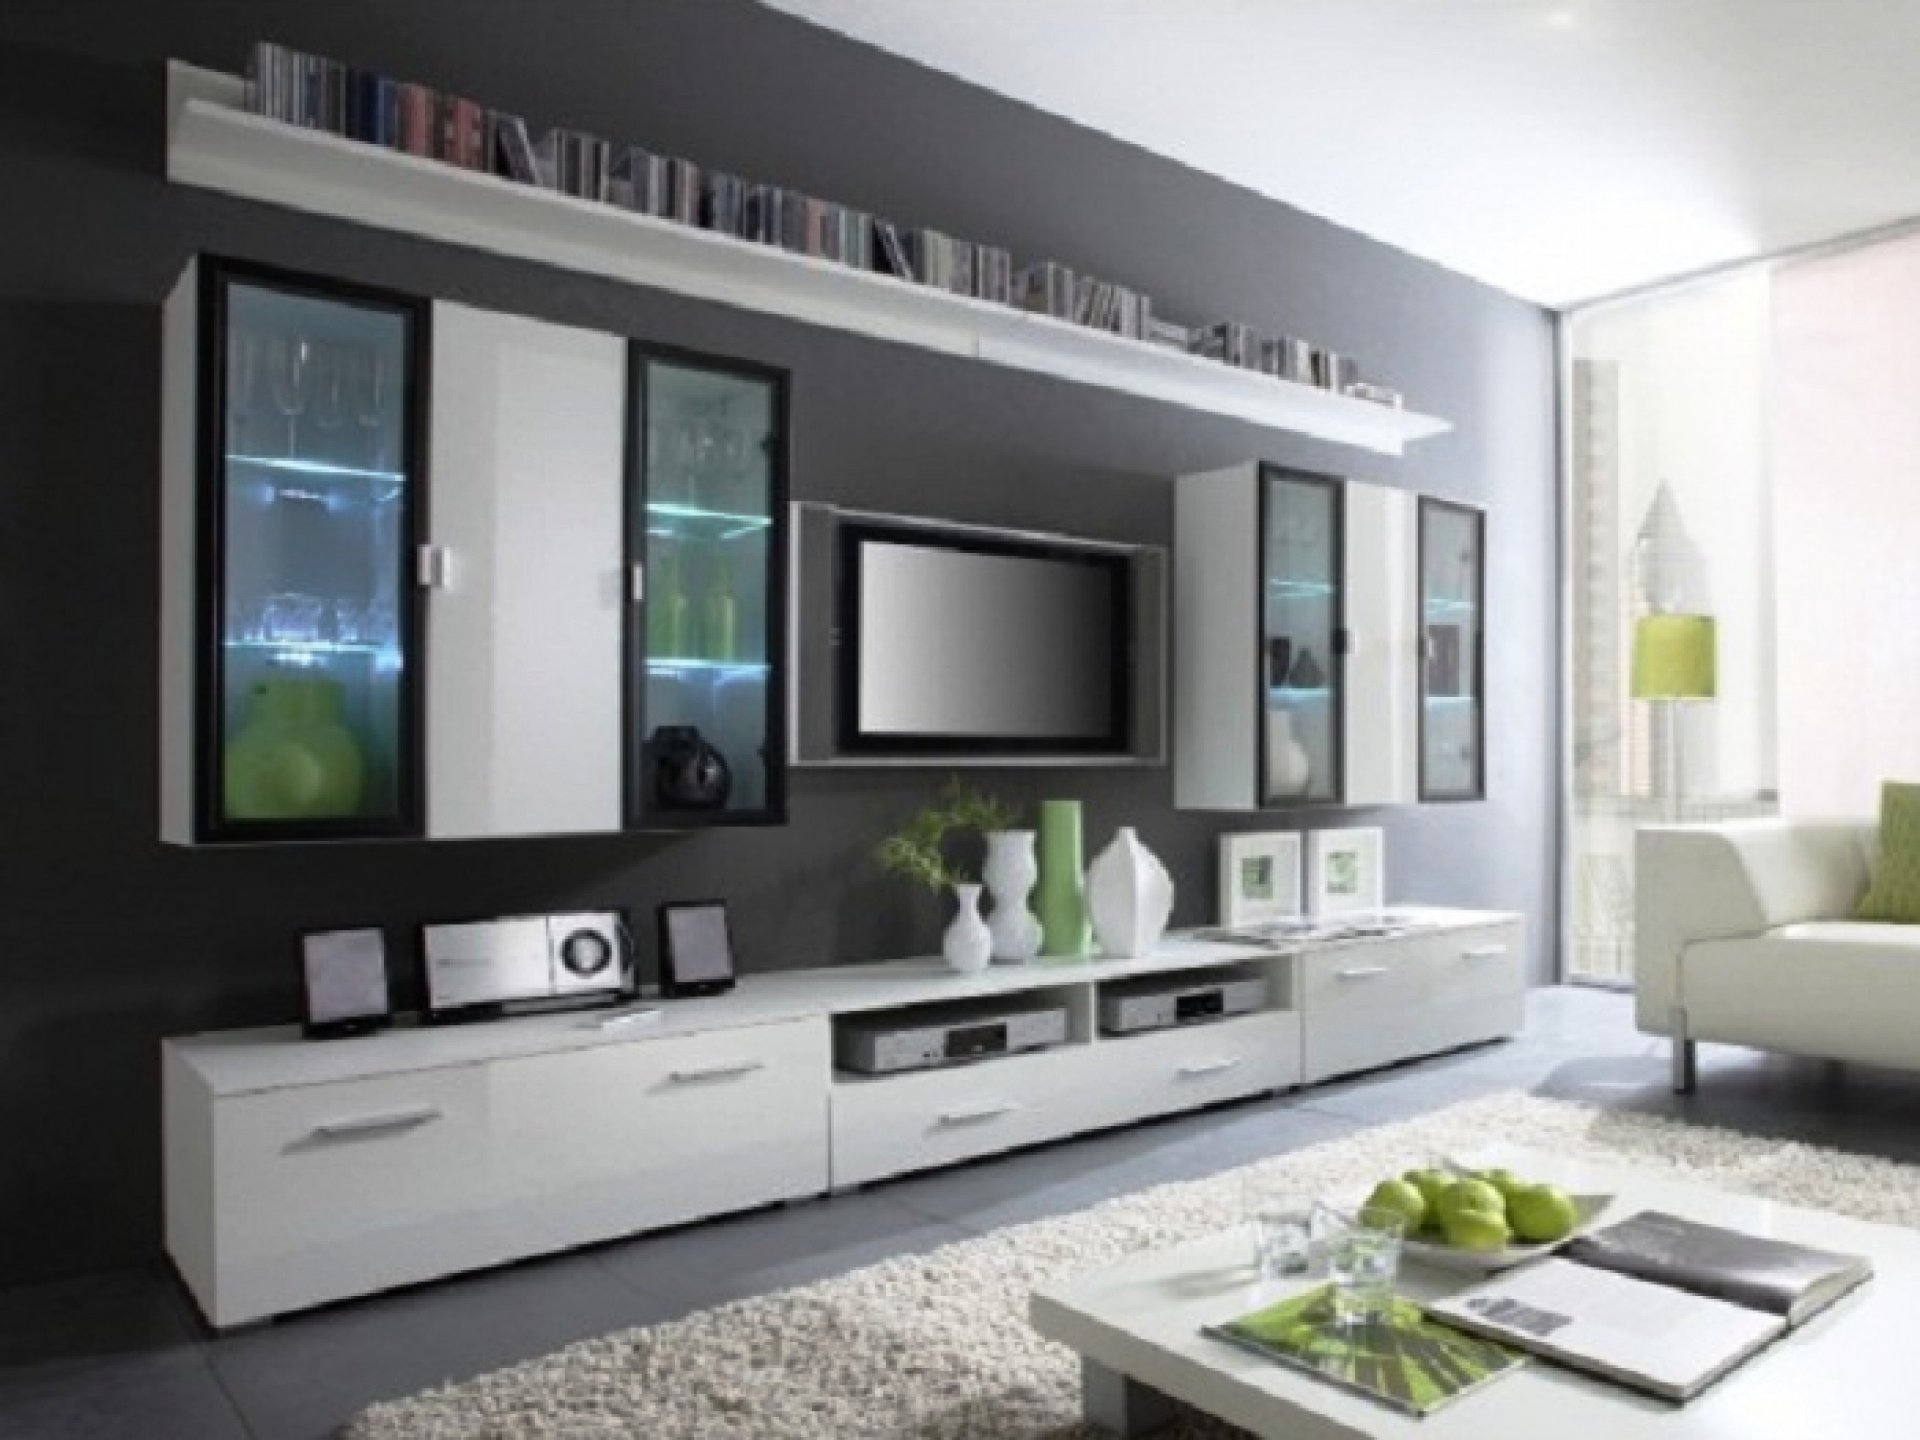 10 Amazing Living Room Ideas With Tv good interior for small living room modern living room ideas with tv 2020